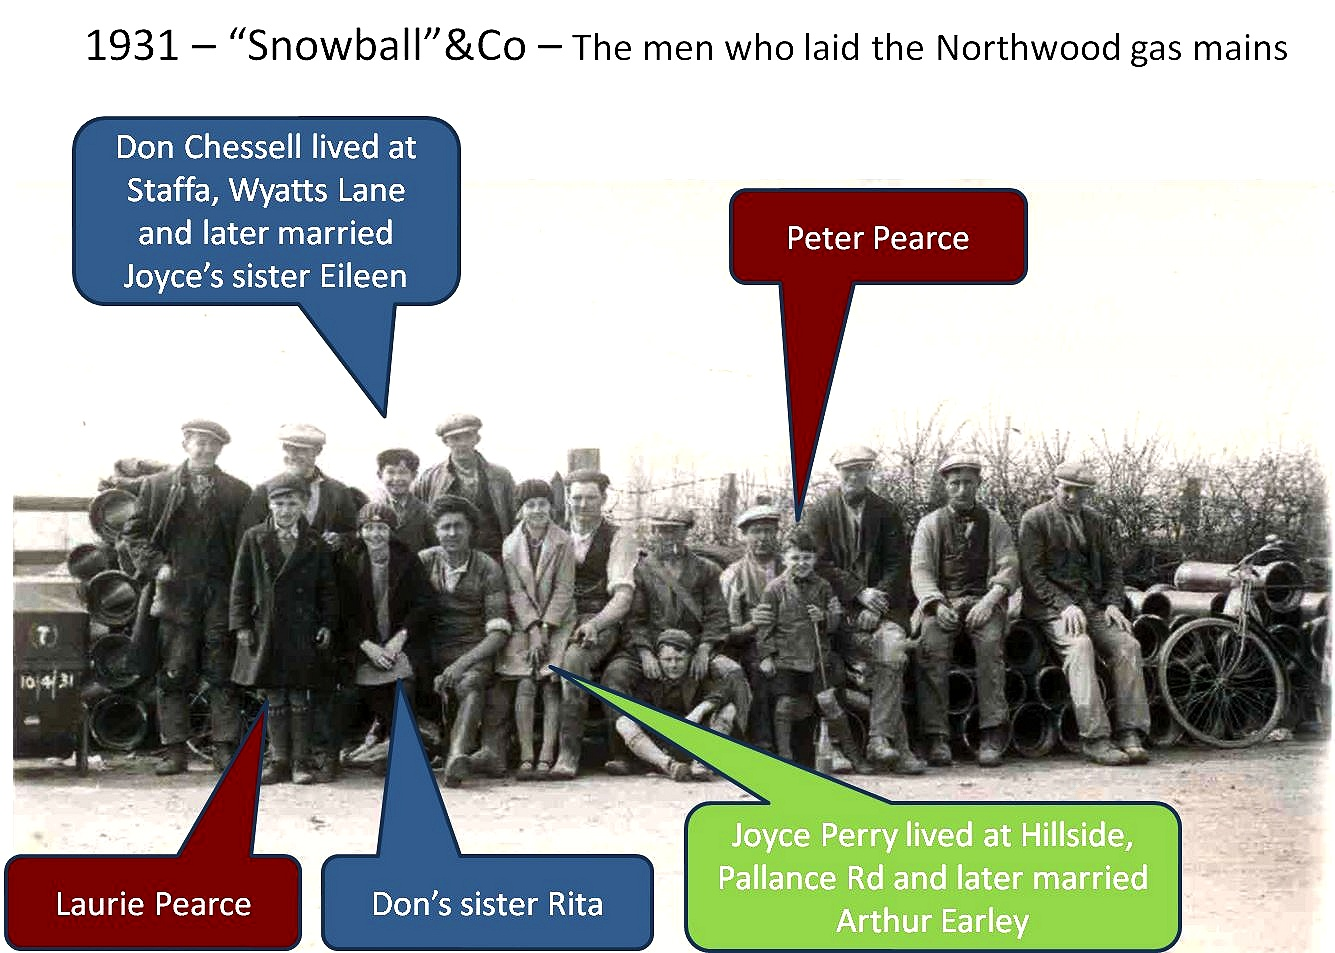 Northwood Main Gas Supply 1931 annotated